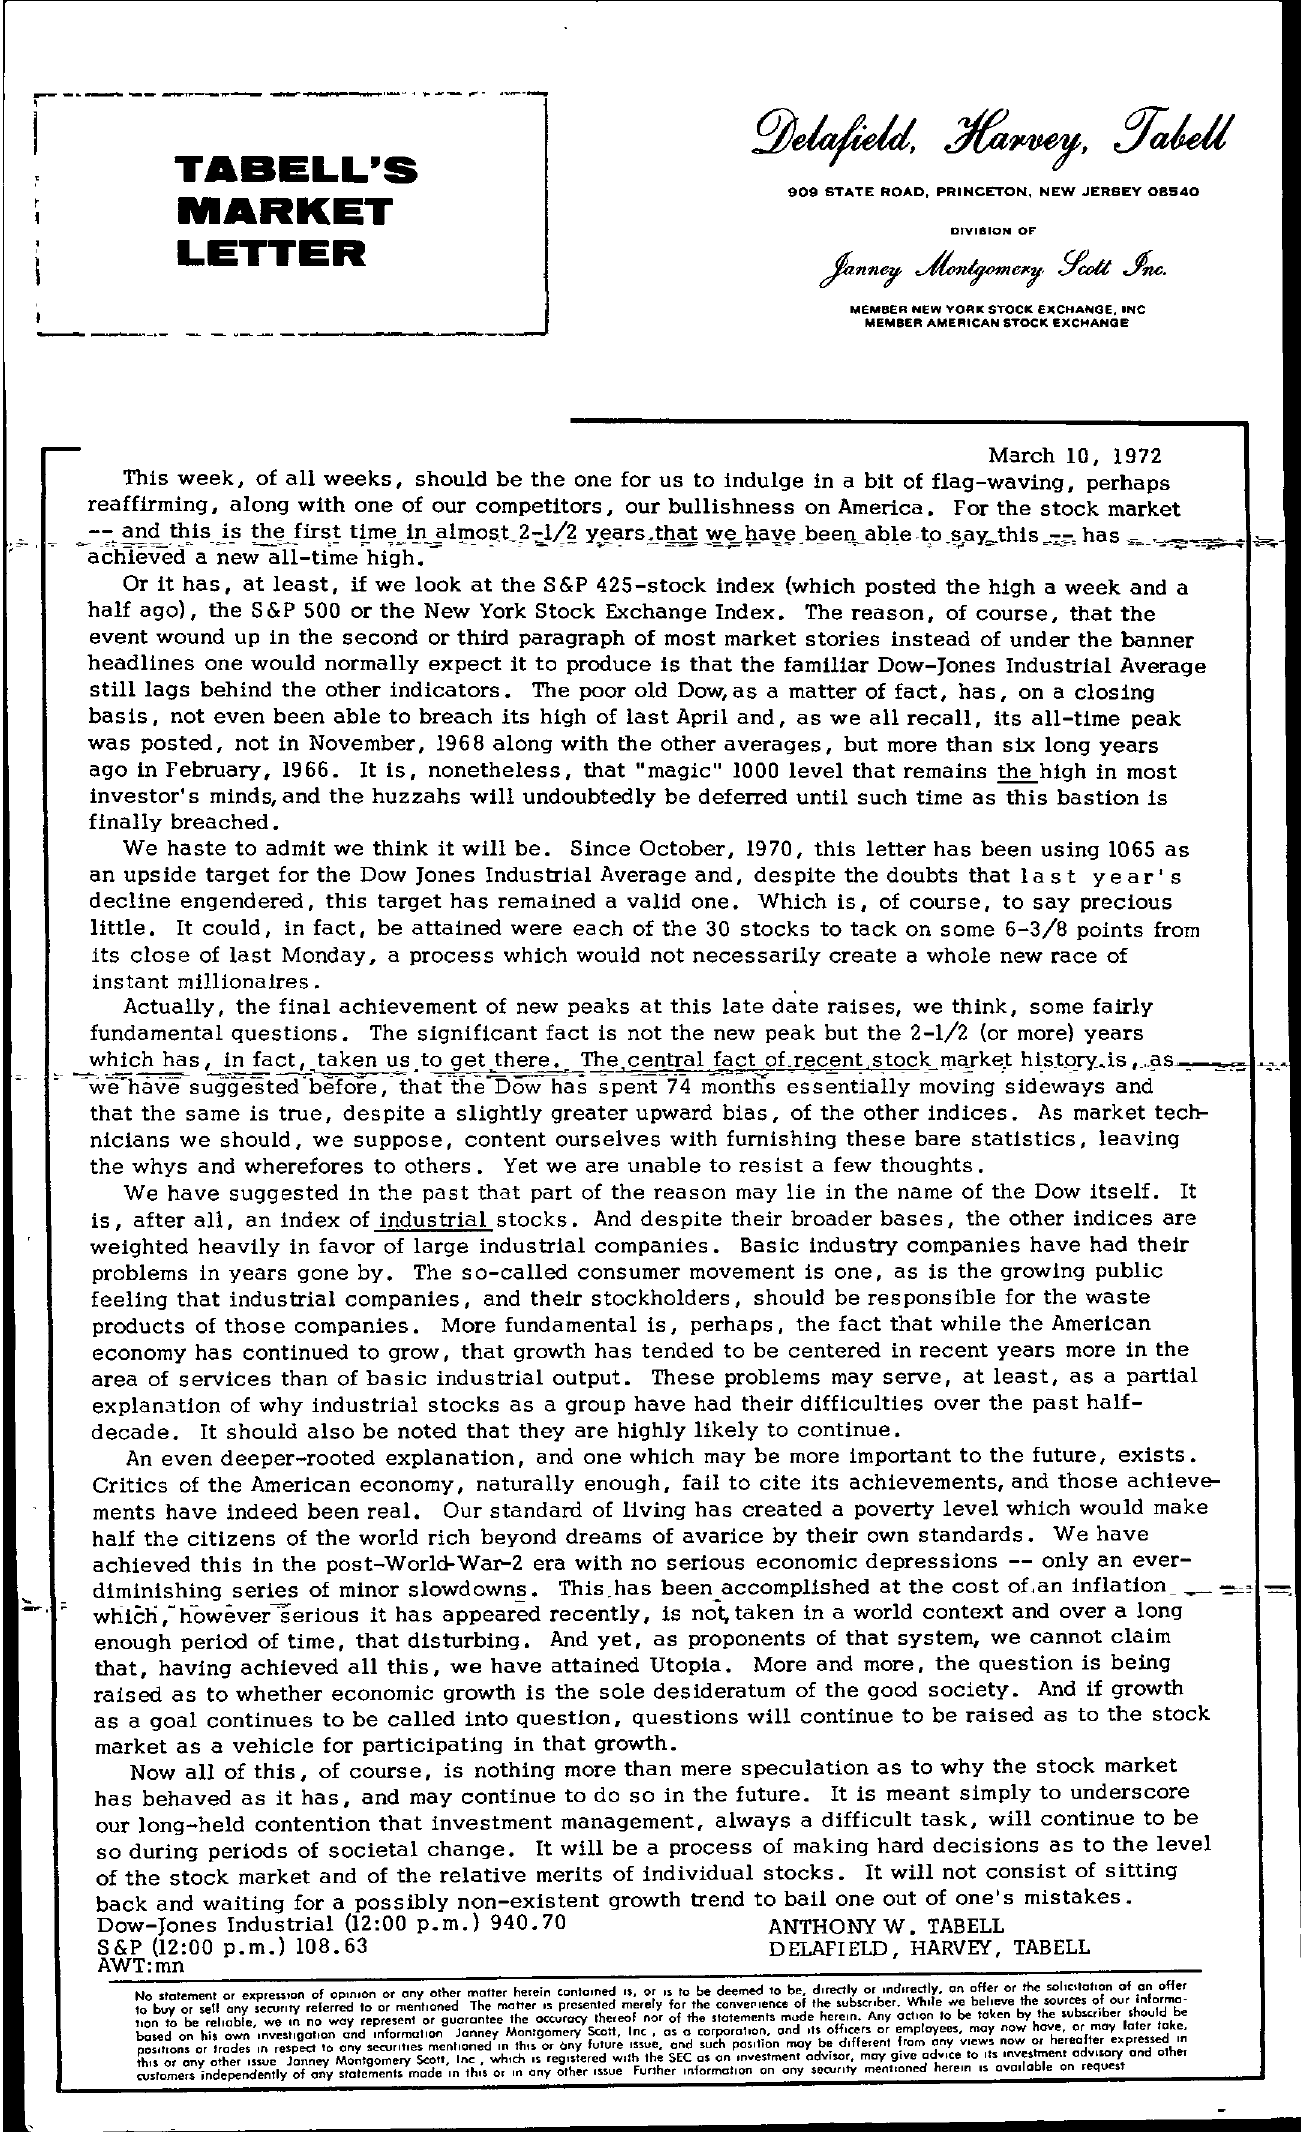 Tabell's Market Letter - March 10, 1972